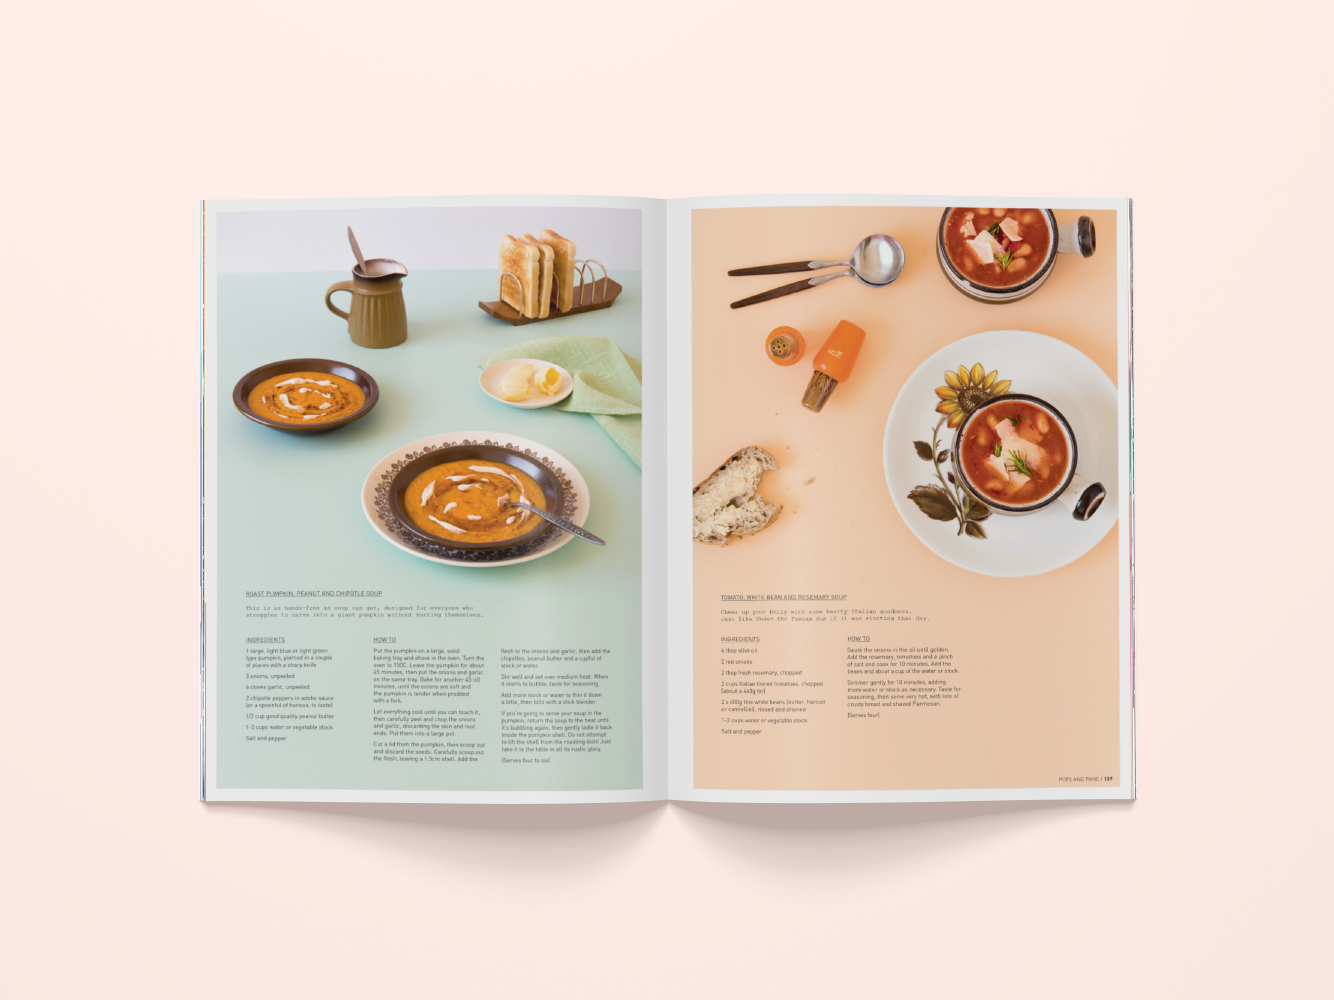 frankie magazine soup editorial editorial layout styling design art direction